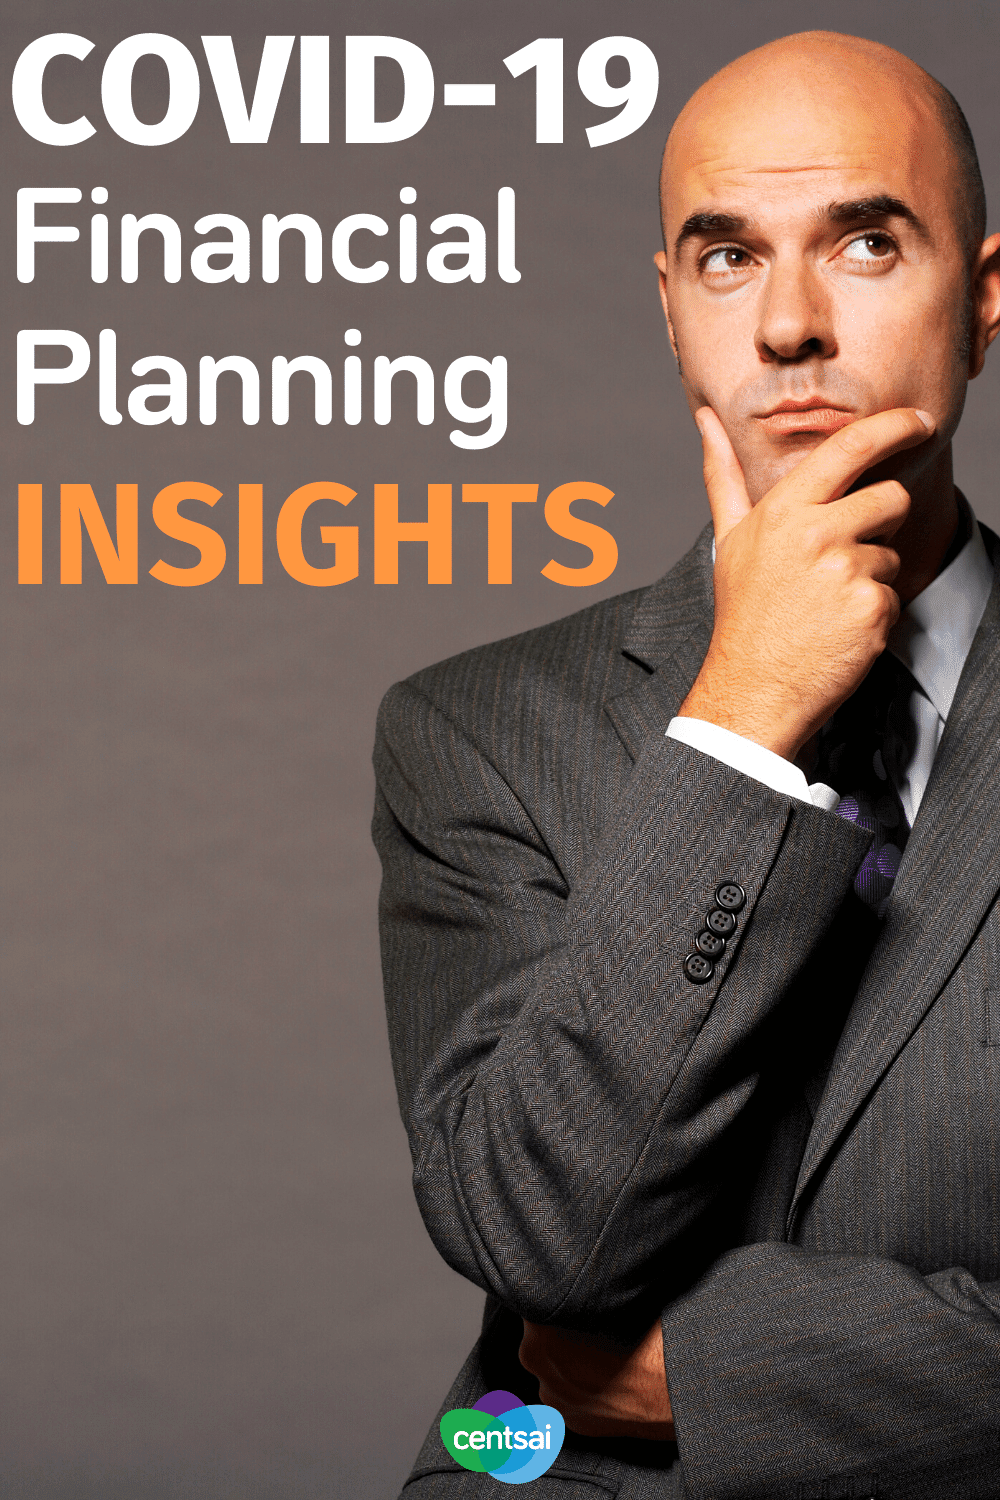 COVID-19 Financial Planning Insights